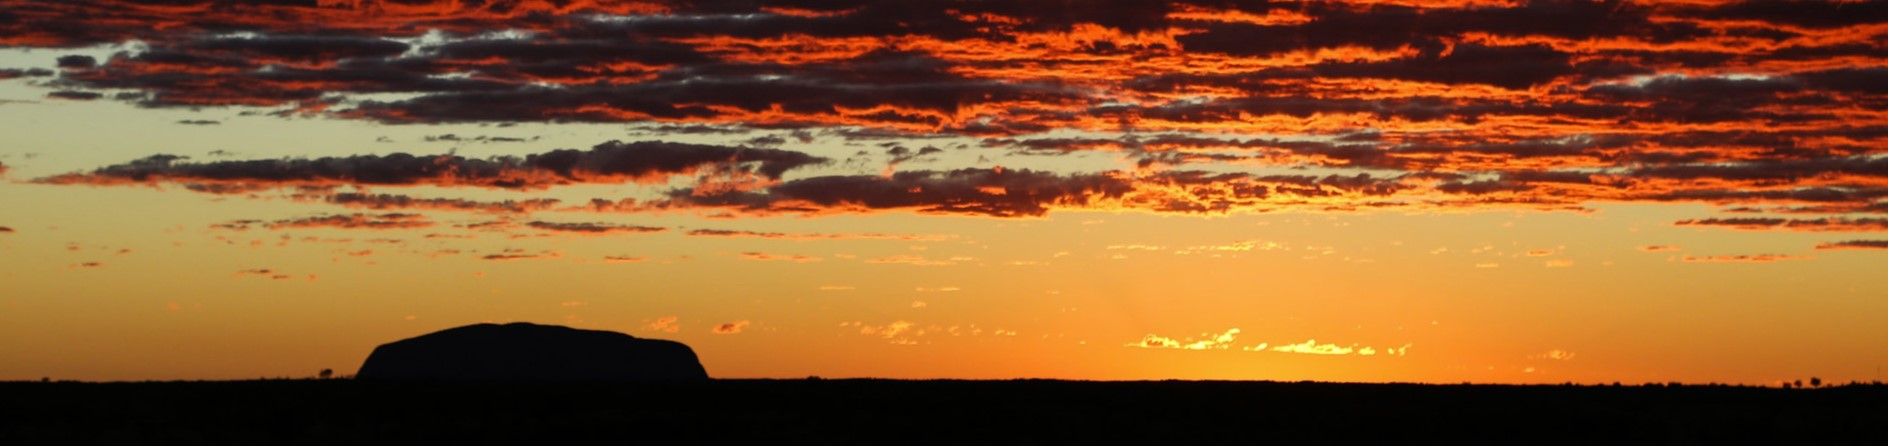 Uluru Sunrise and Sunset Tours are available now